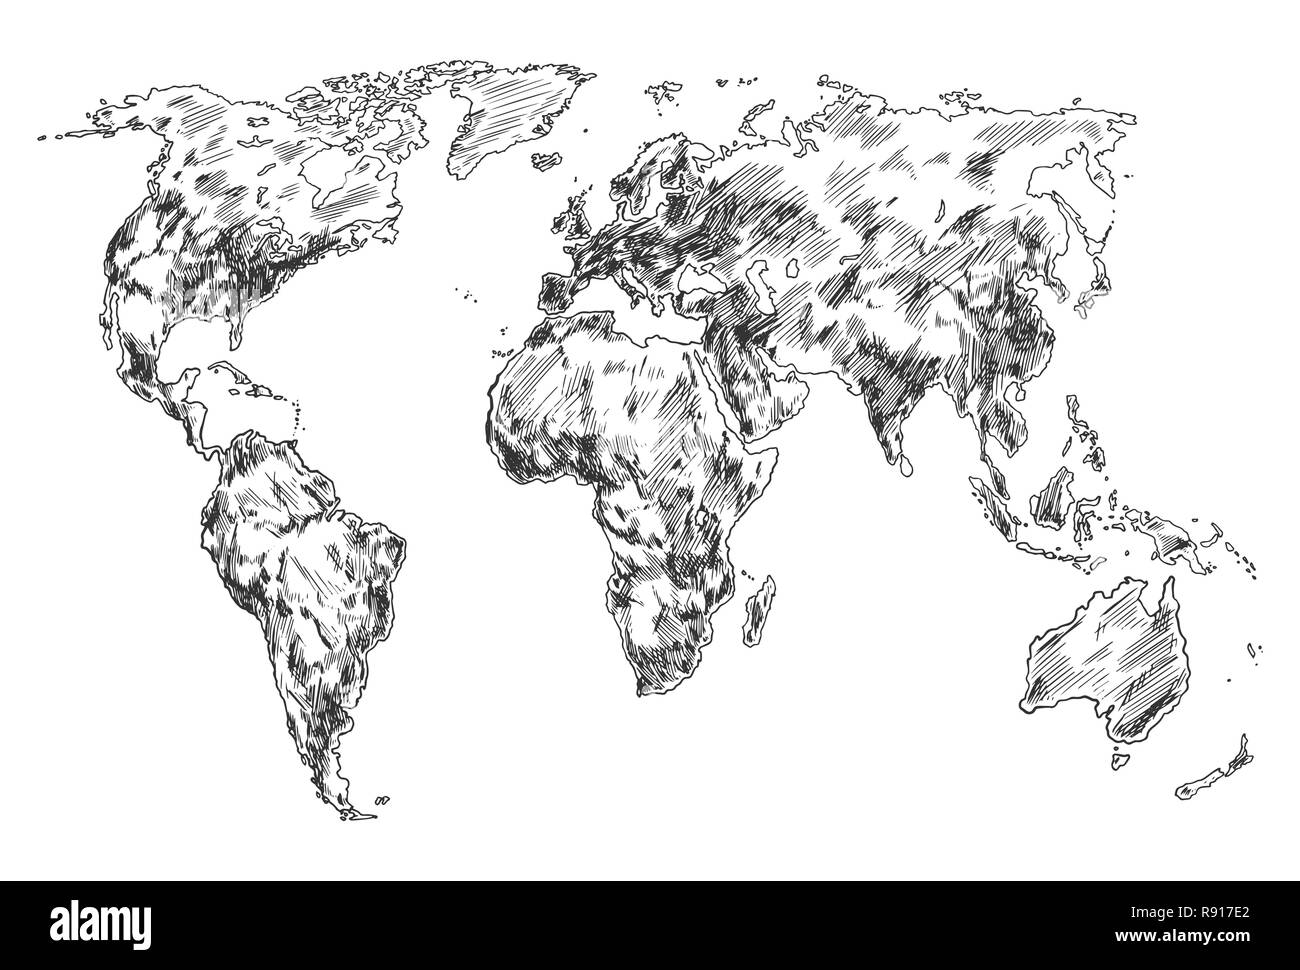 Sketch of Earth world map. Hand drawn continents - Stock Image